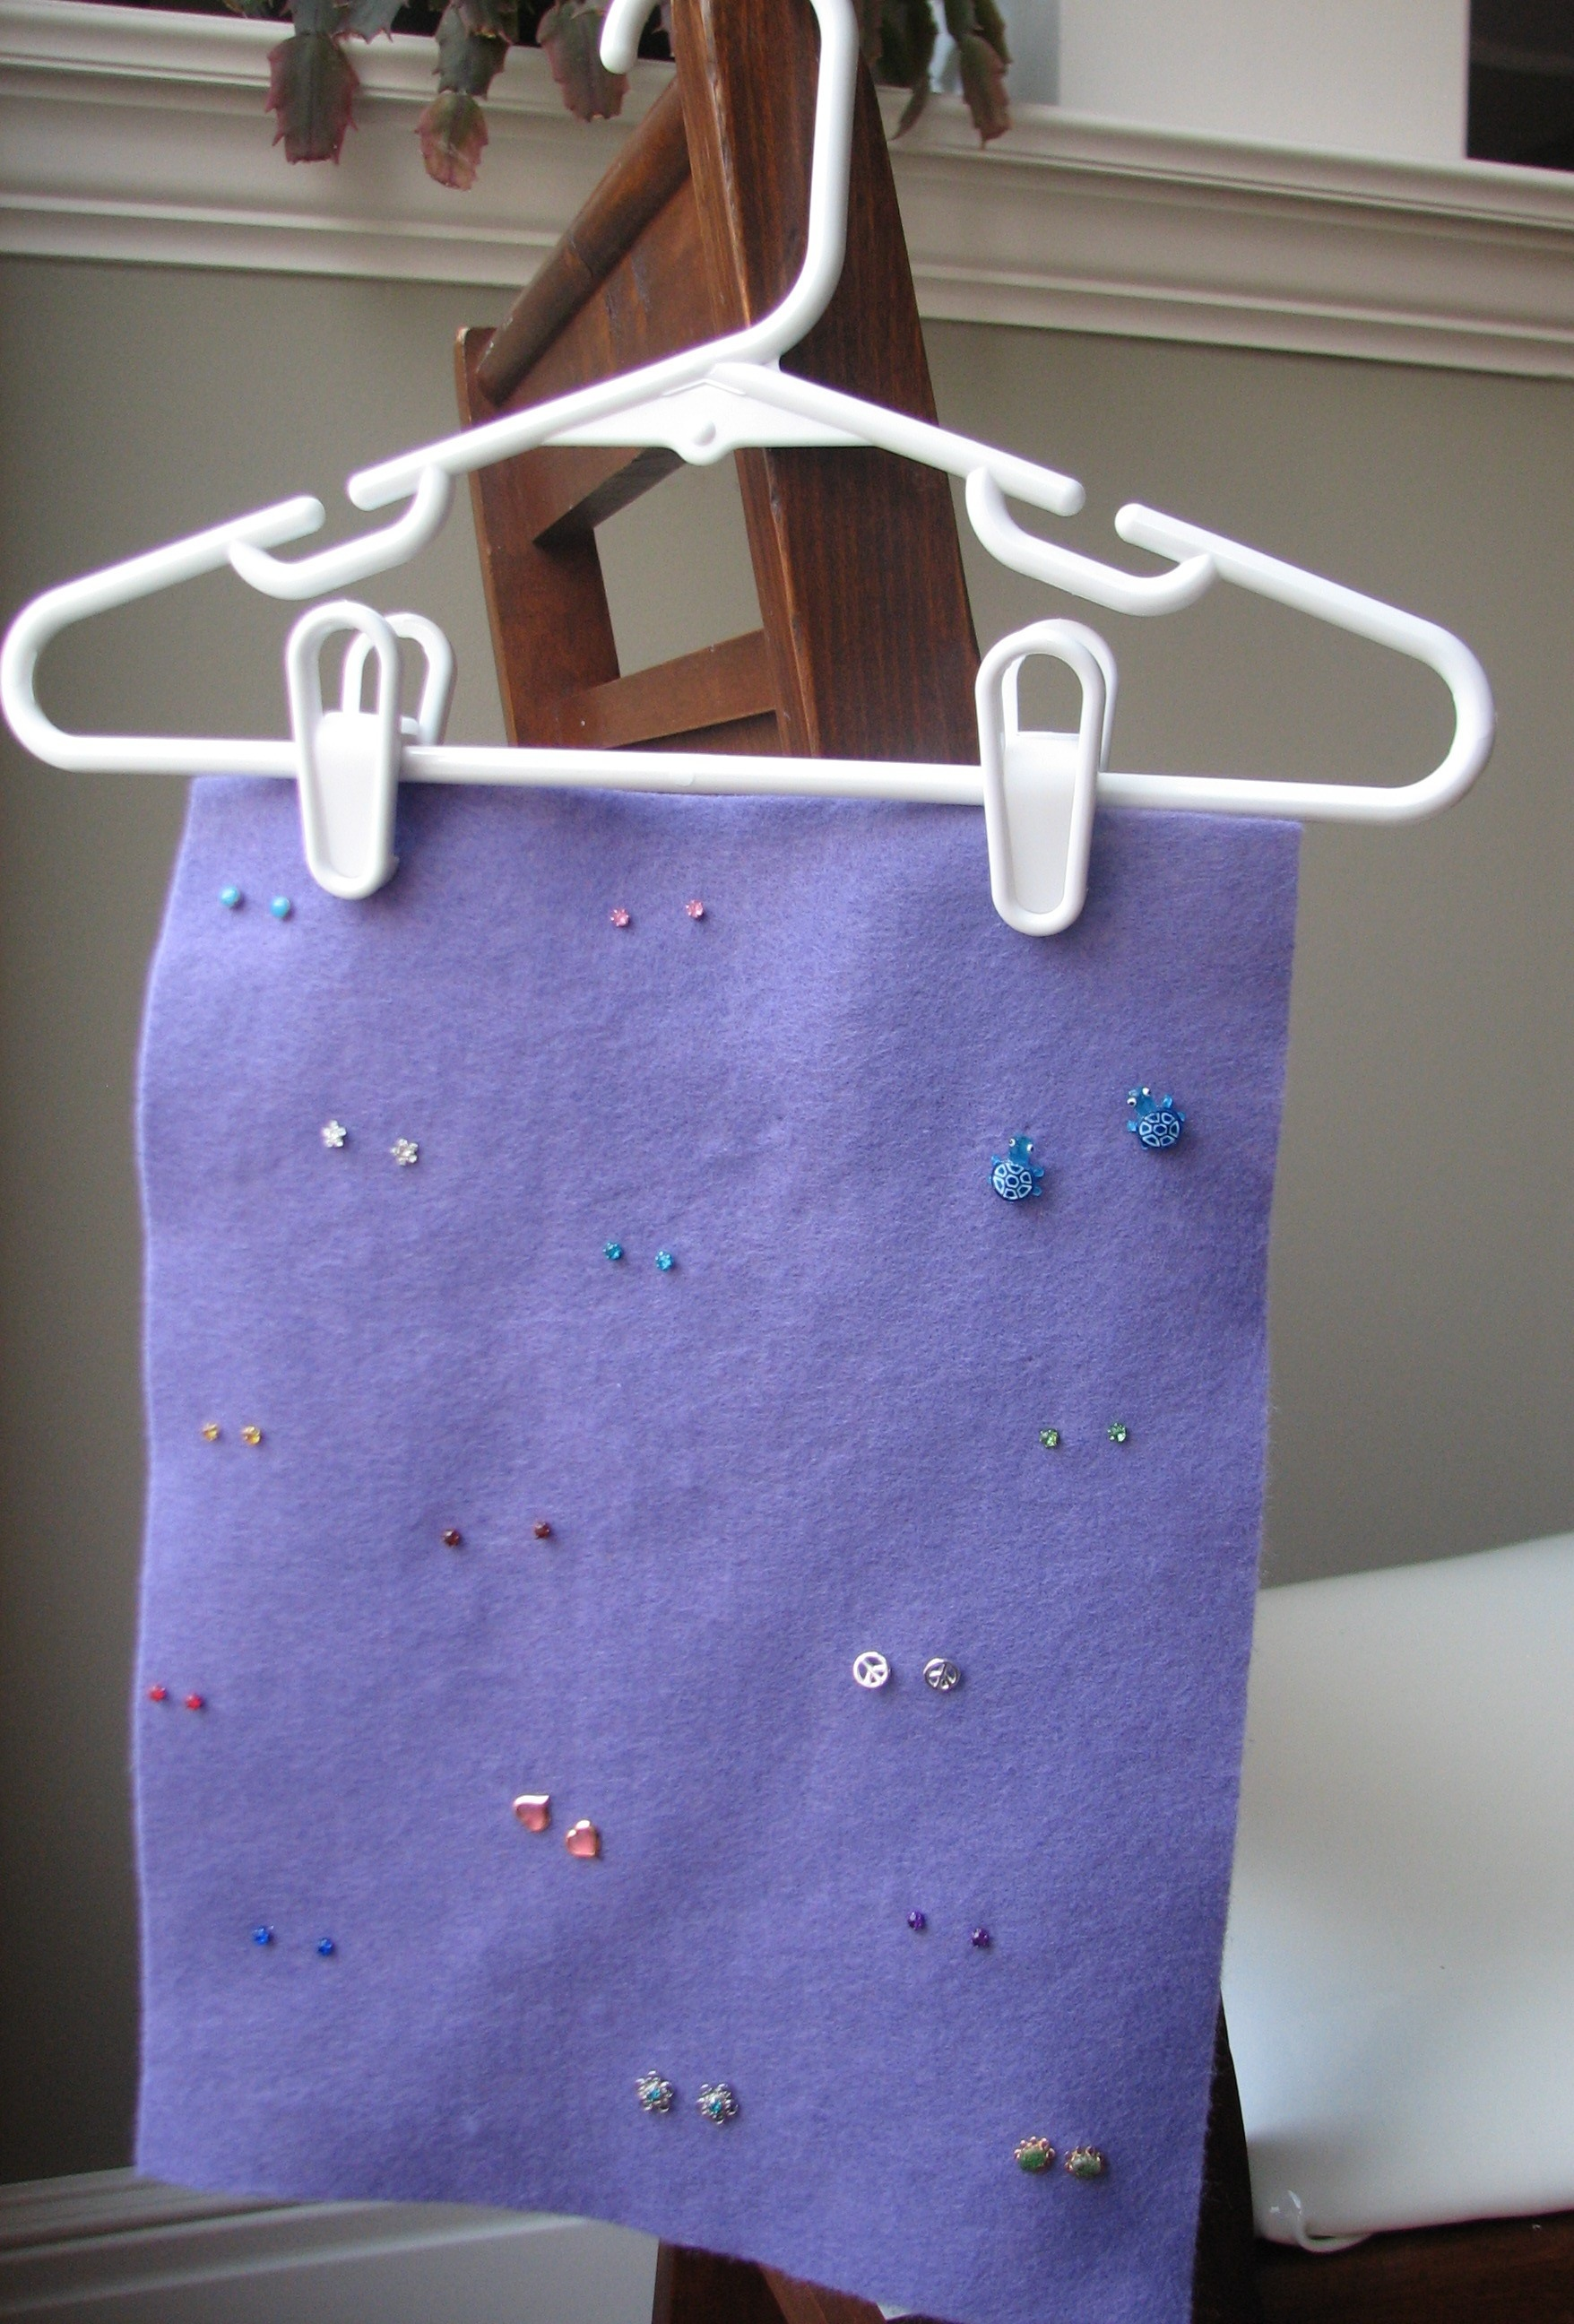 Got A Pants Hanger Or Hanger With Clips? A 34 Cent Piece Of Felt? Voila!  It Is A Cinch To Take Studs